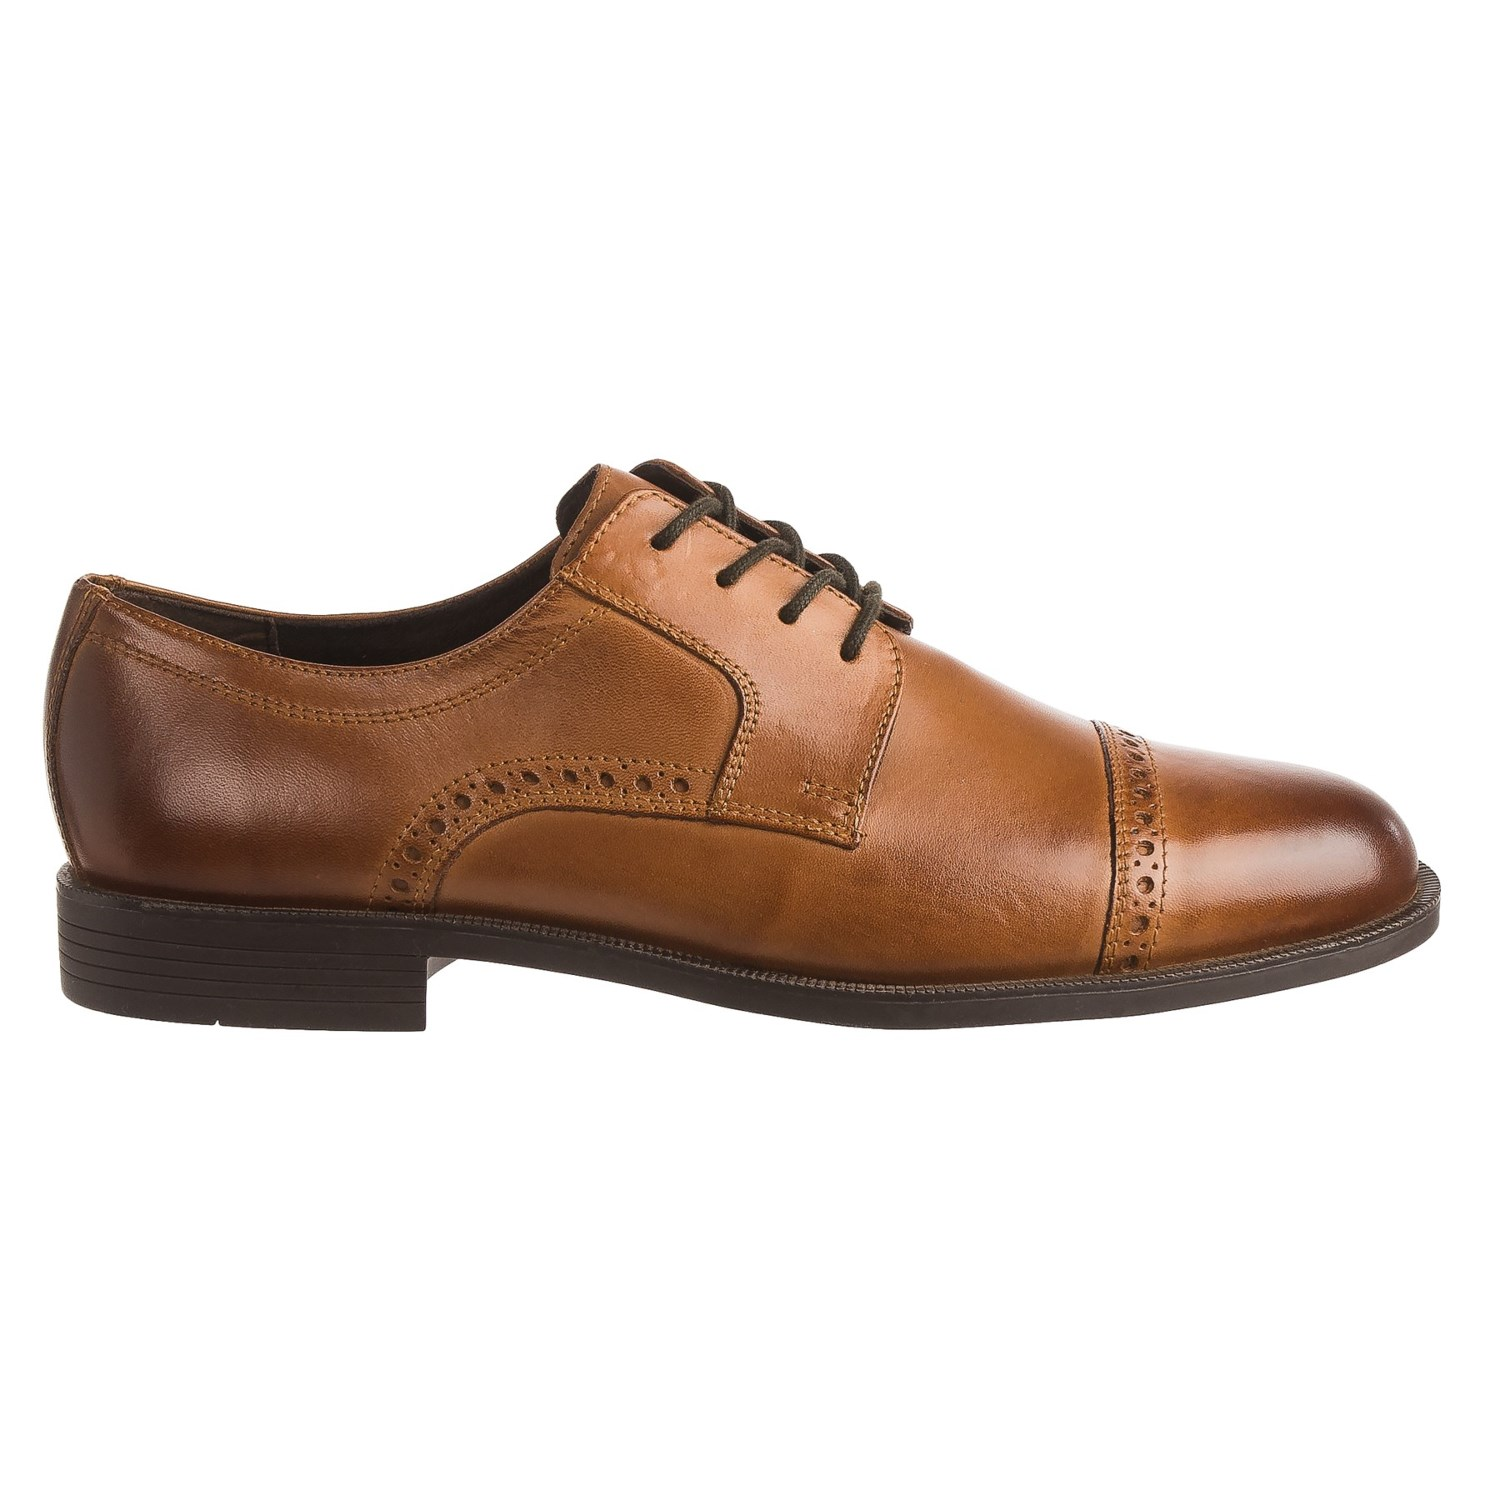 Cole Haan Dustin Oxford Shoes - Leather (For Men)